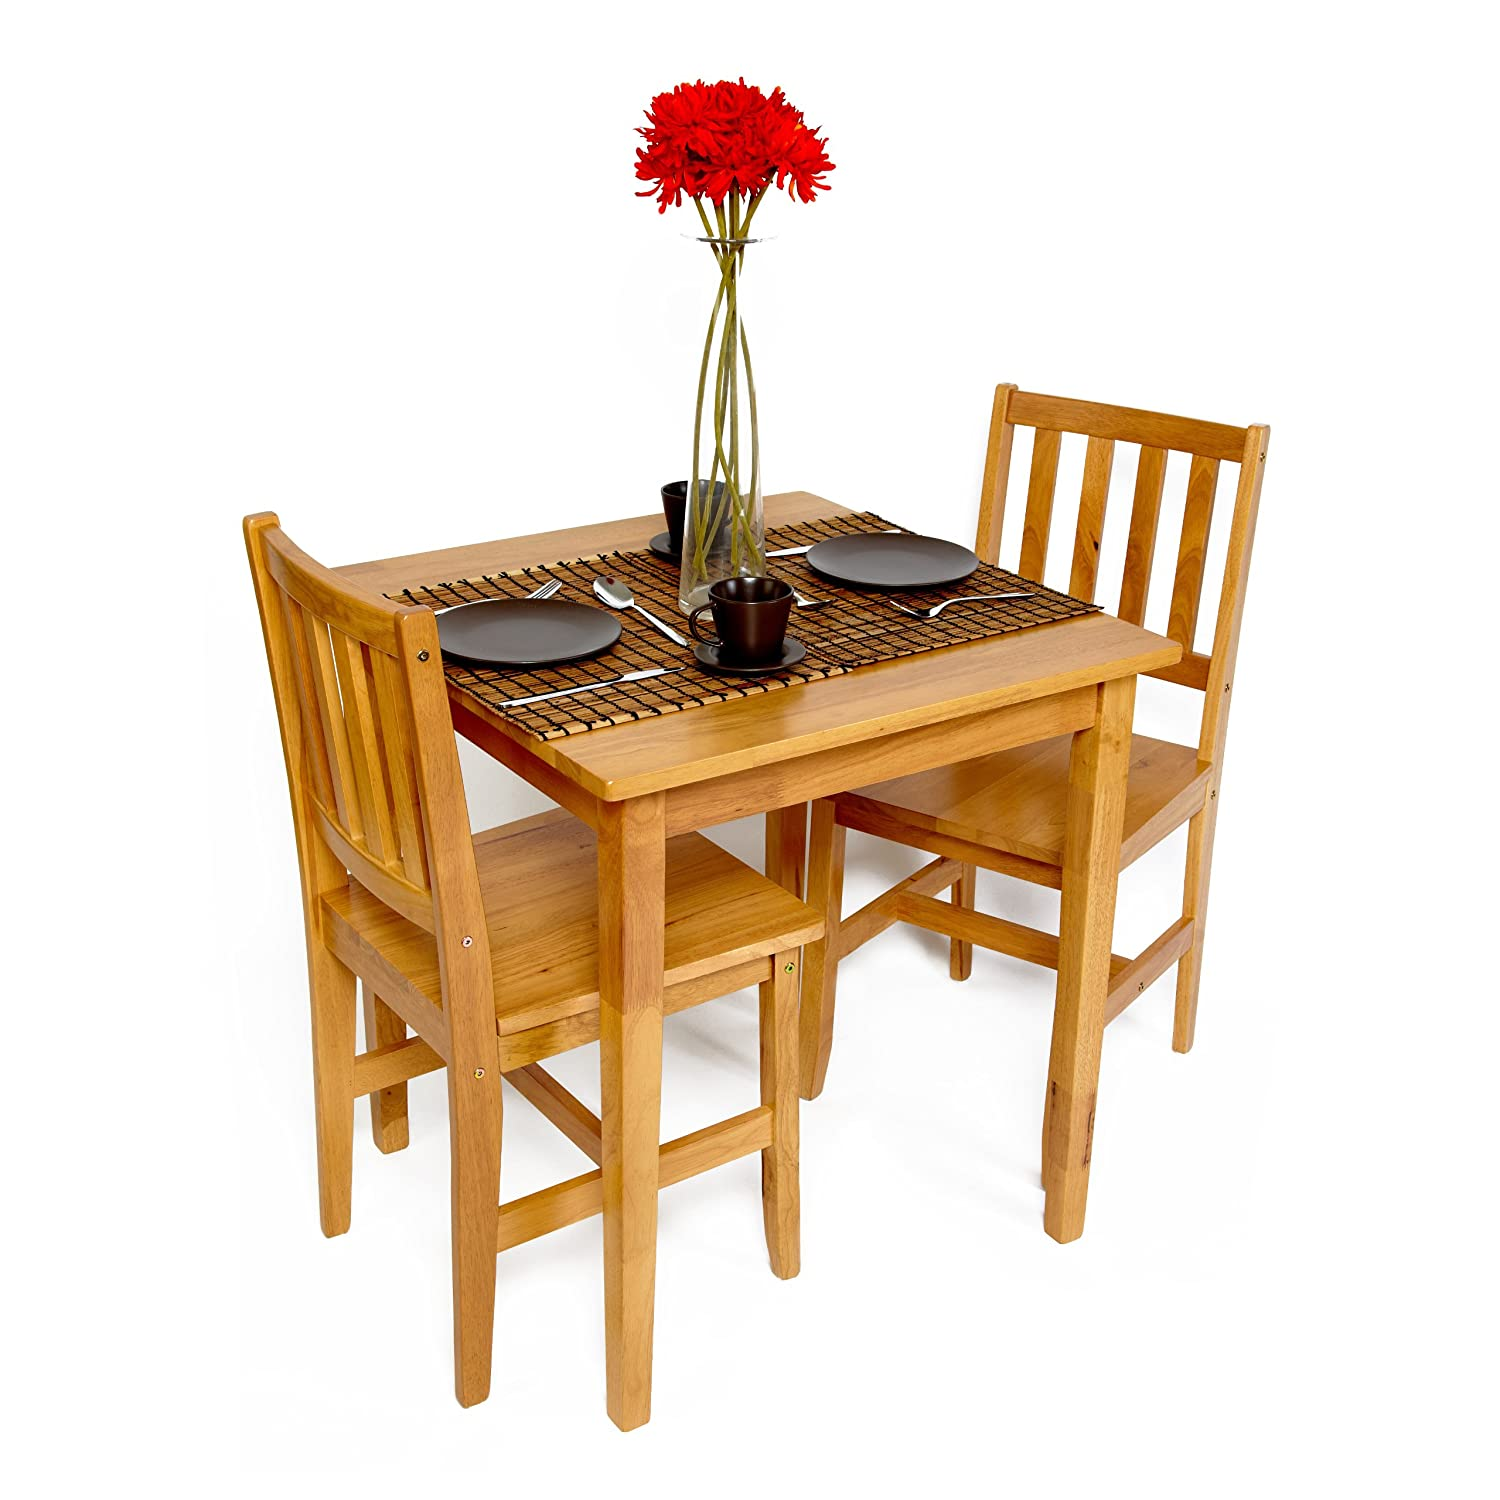 2 chair bistro set red christmas covers table and chairs dining small cafe tables wood